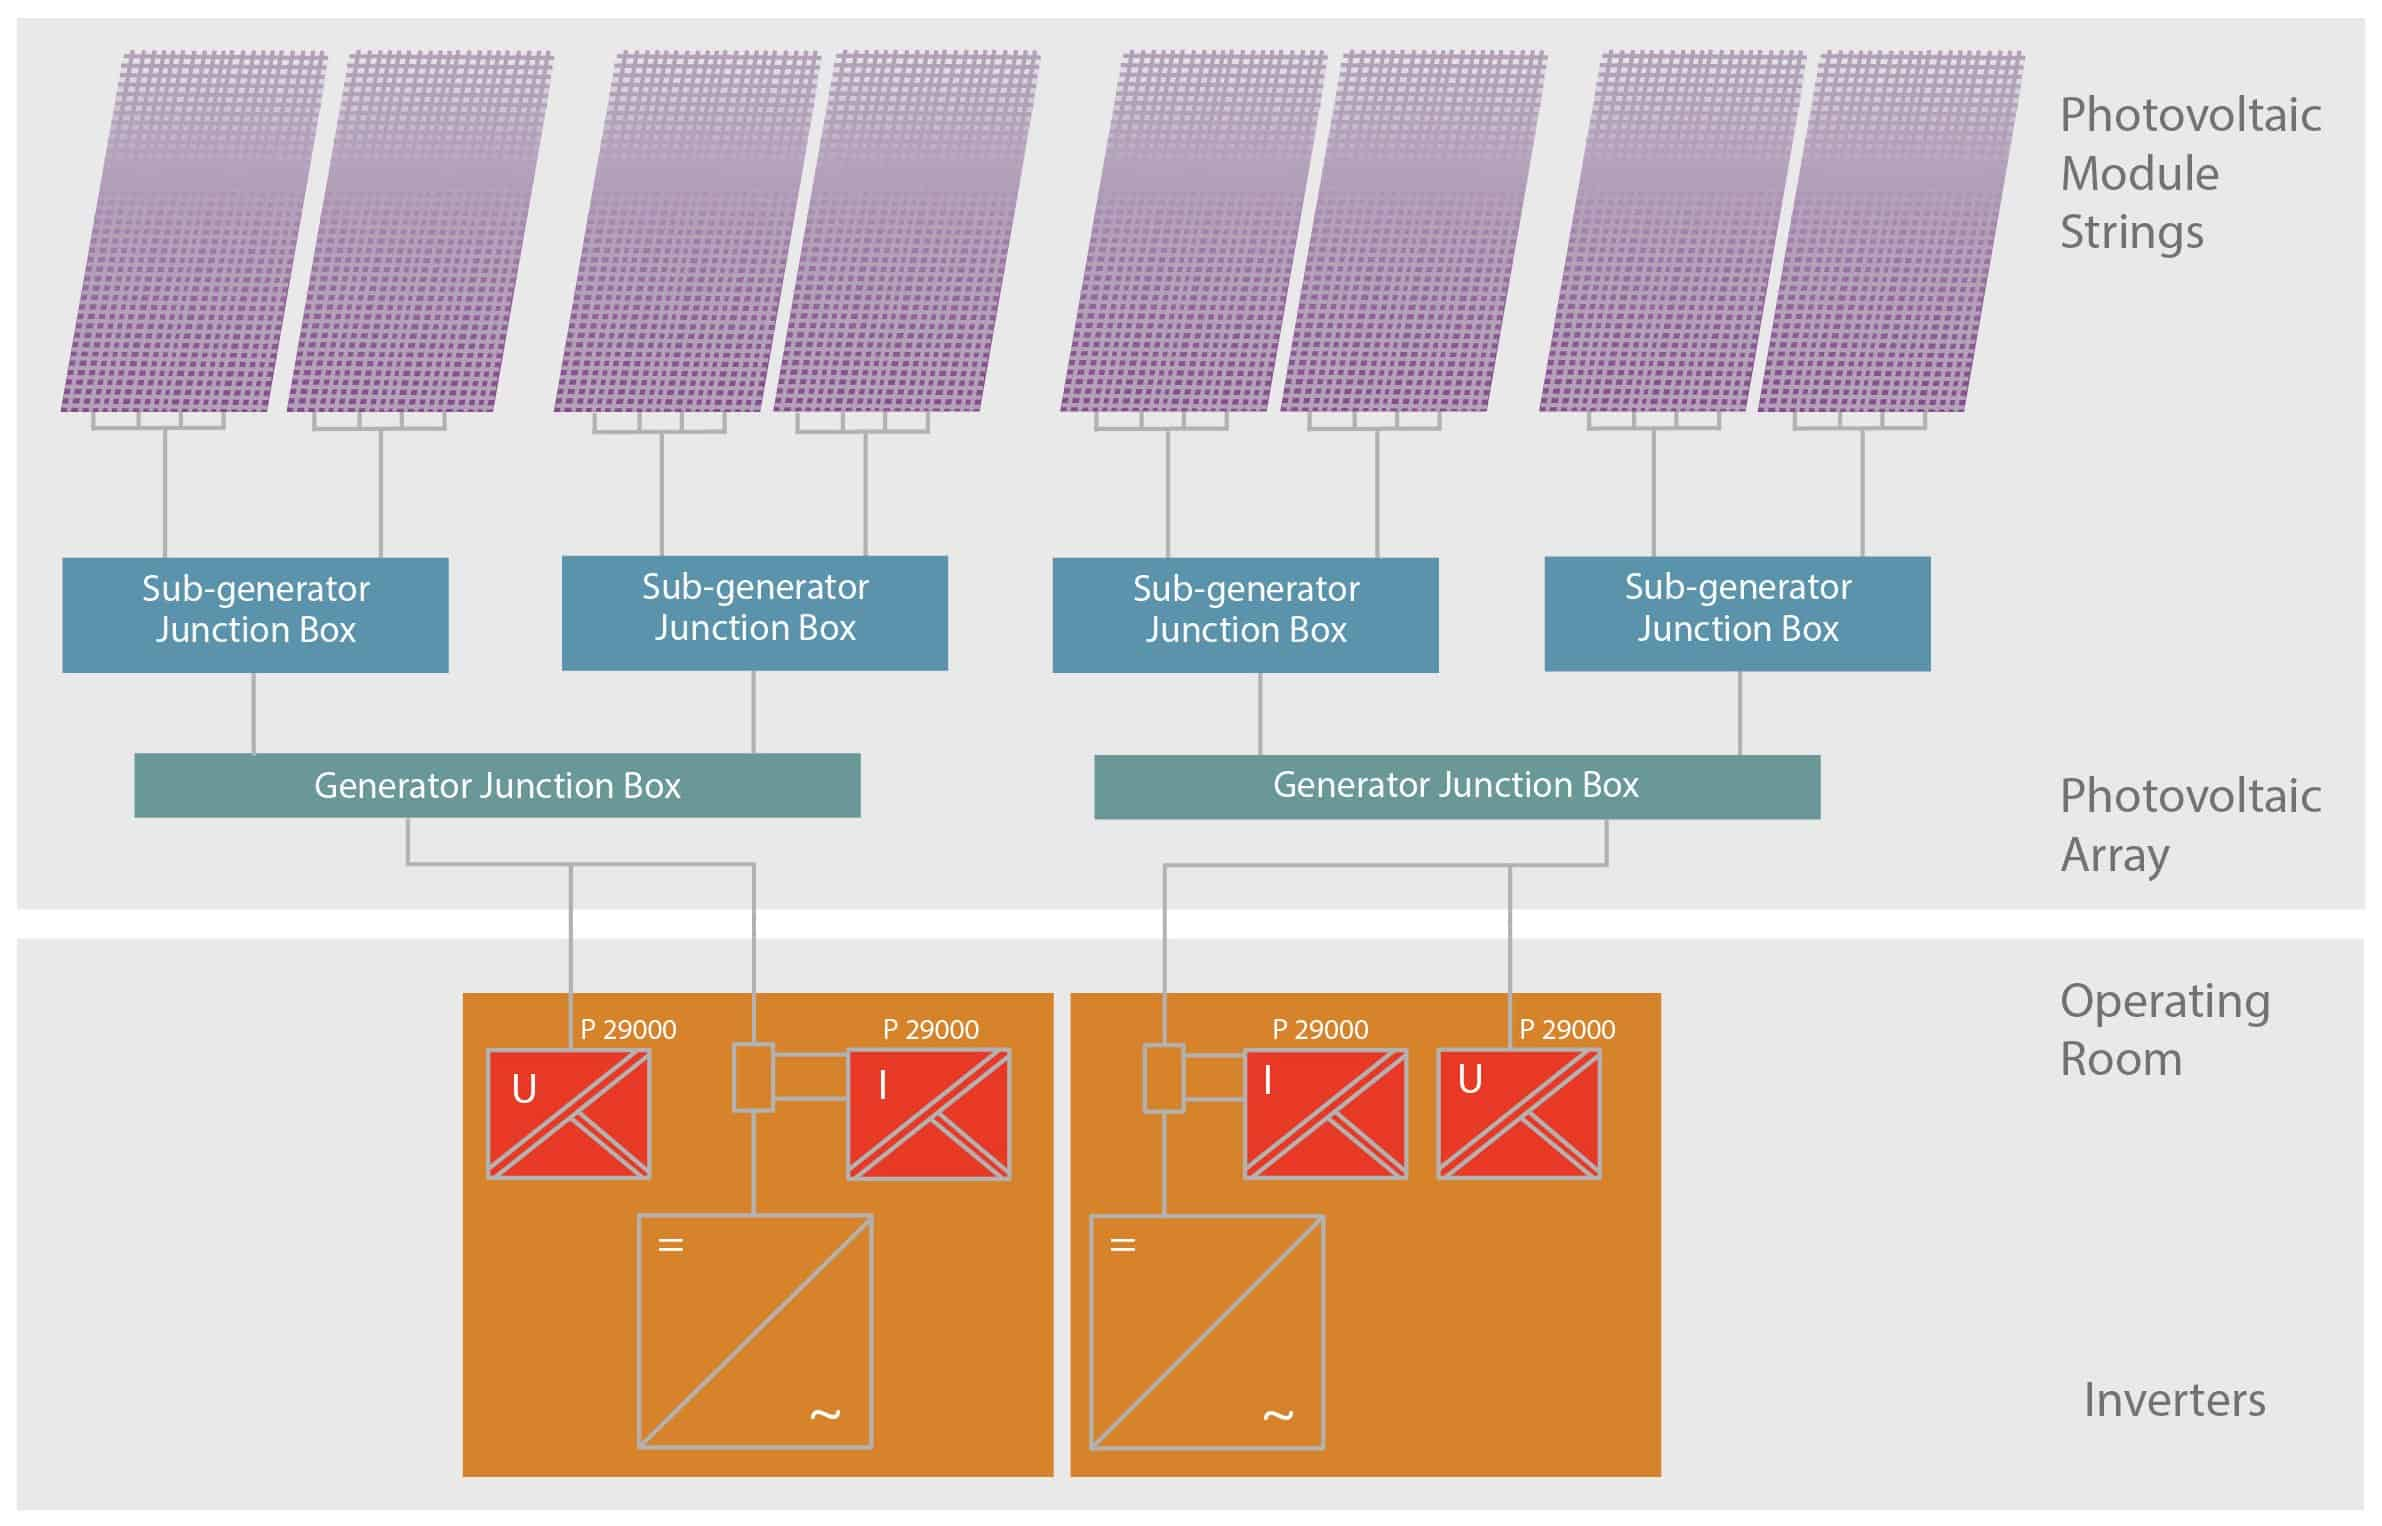 colourful graphic showing the set-up of a photovoltaic array including modules, sub generators, junction boxes and inverters